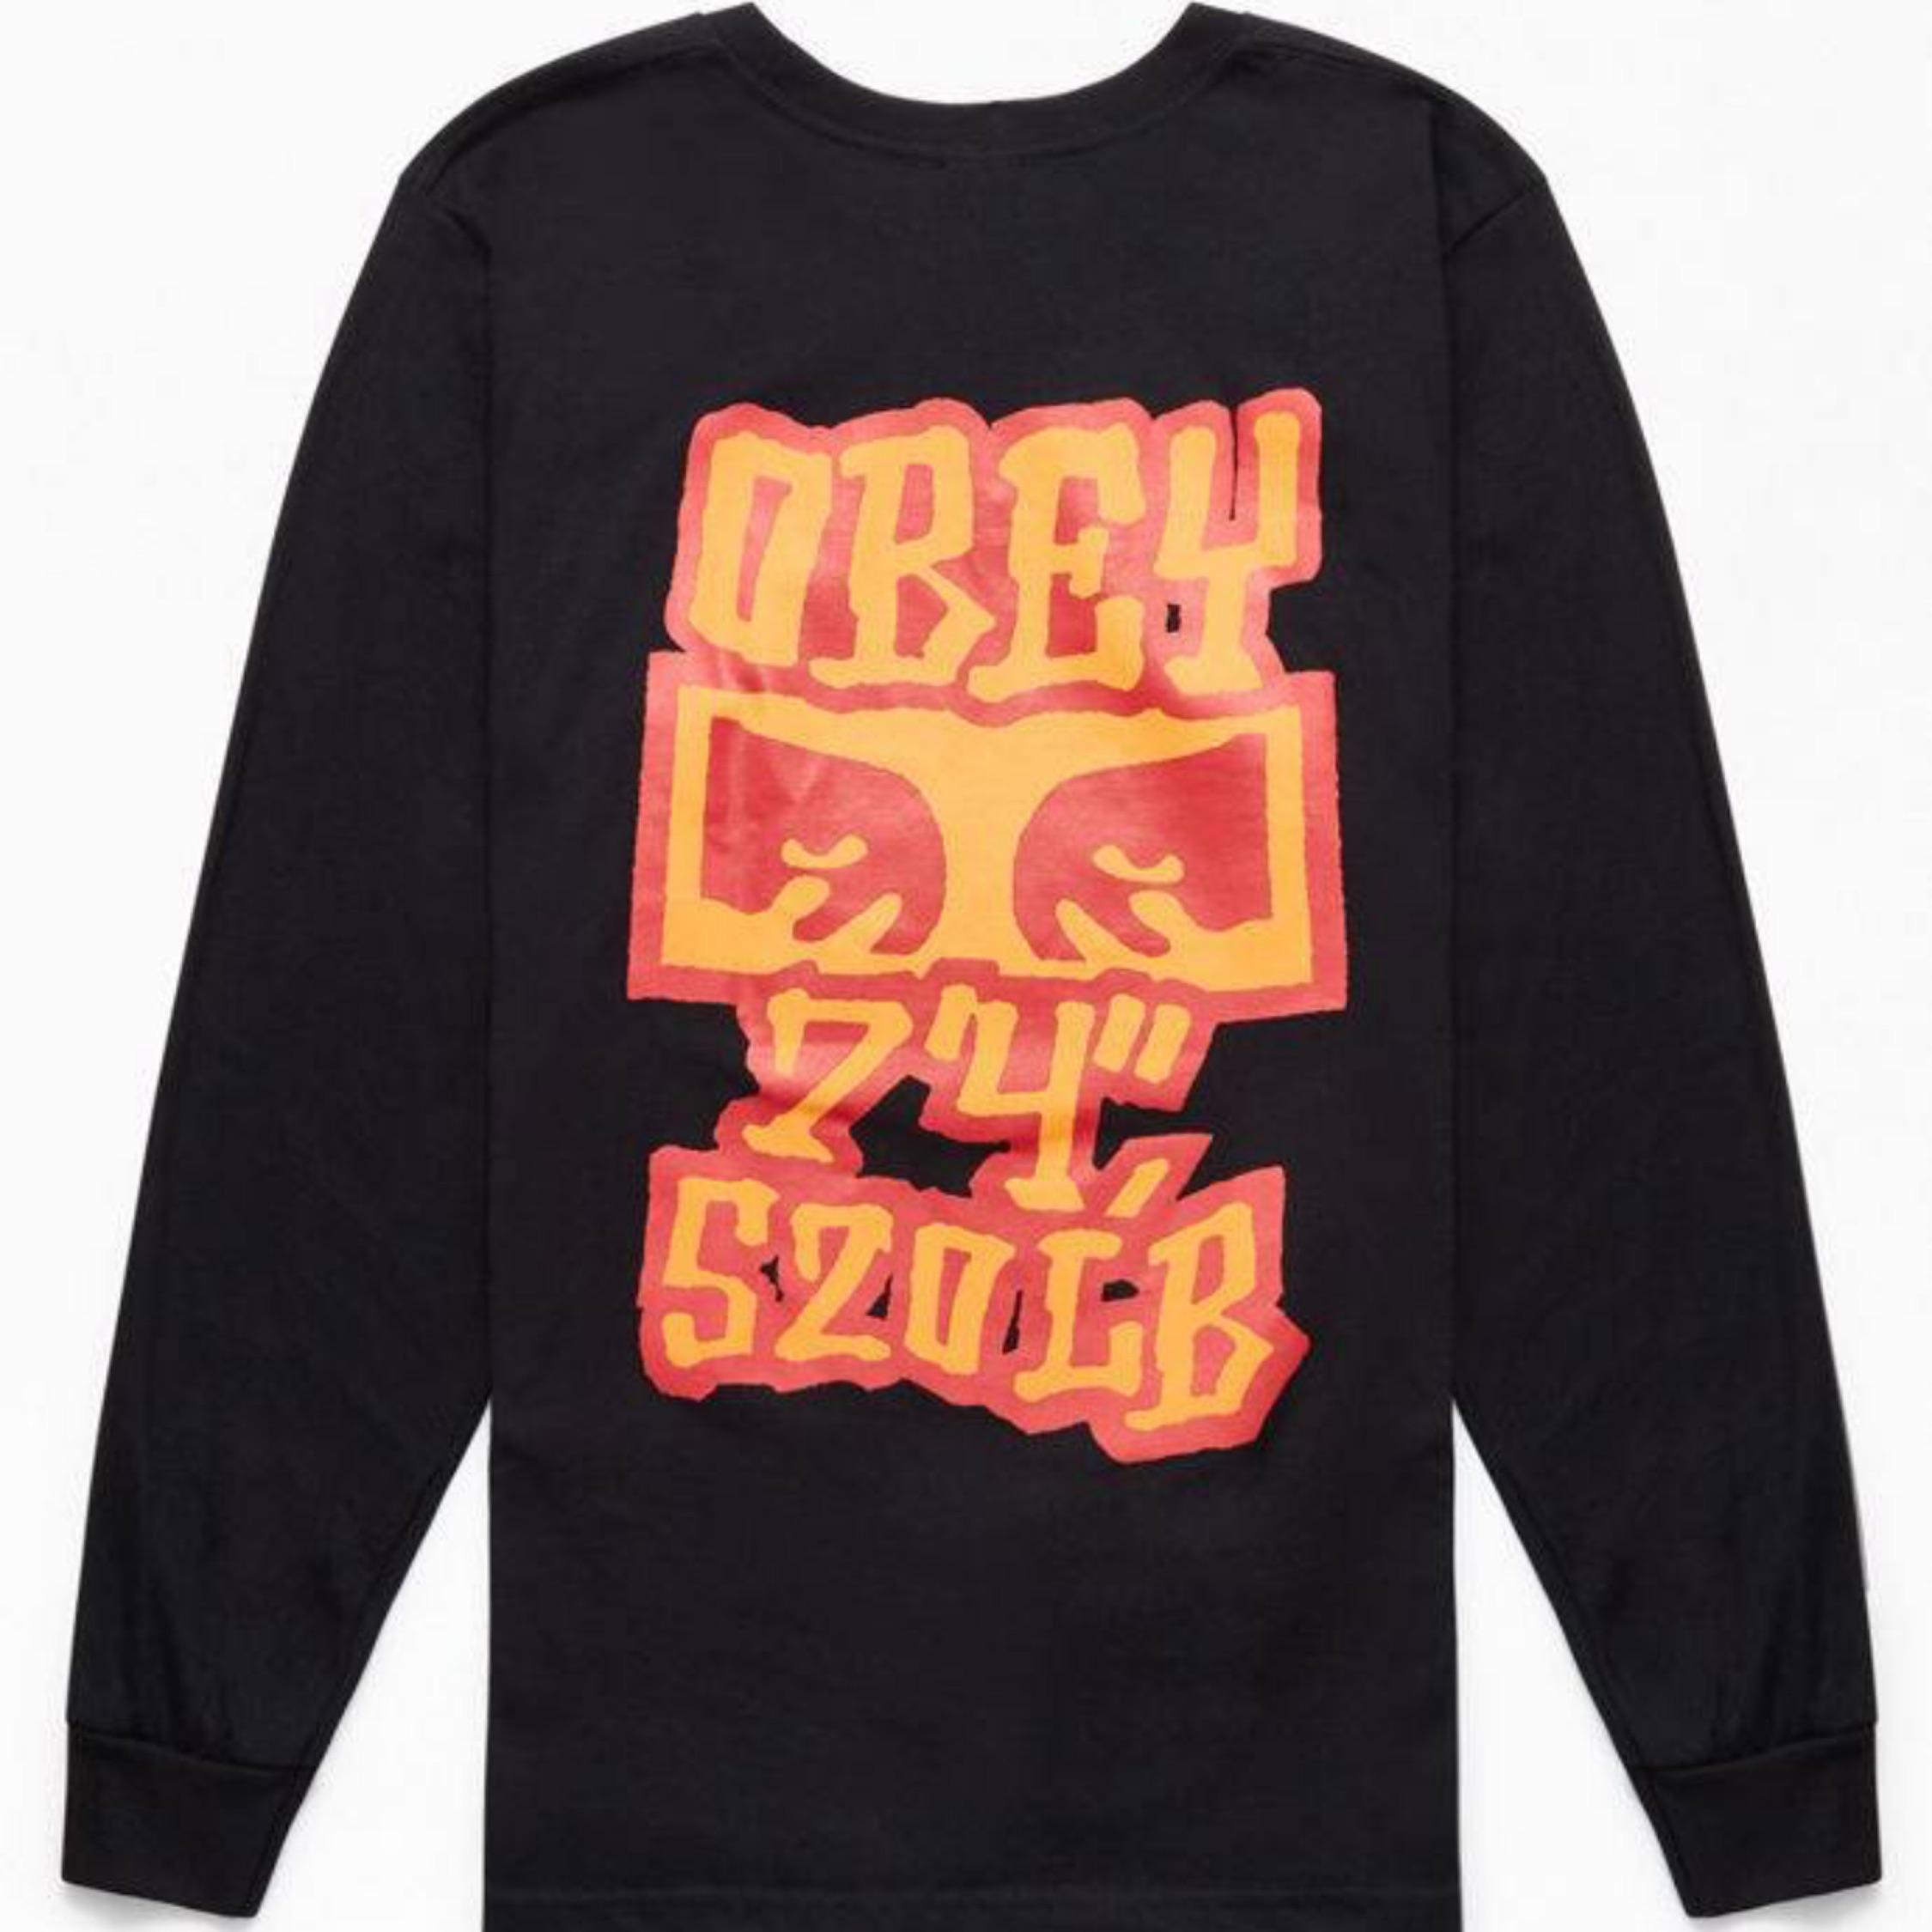 7b037350a096 Obey Seven Four Long Sleeve T-Shirt